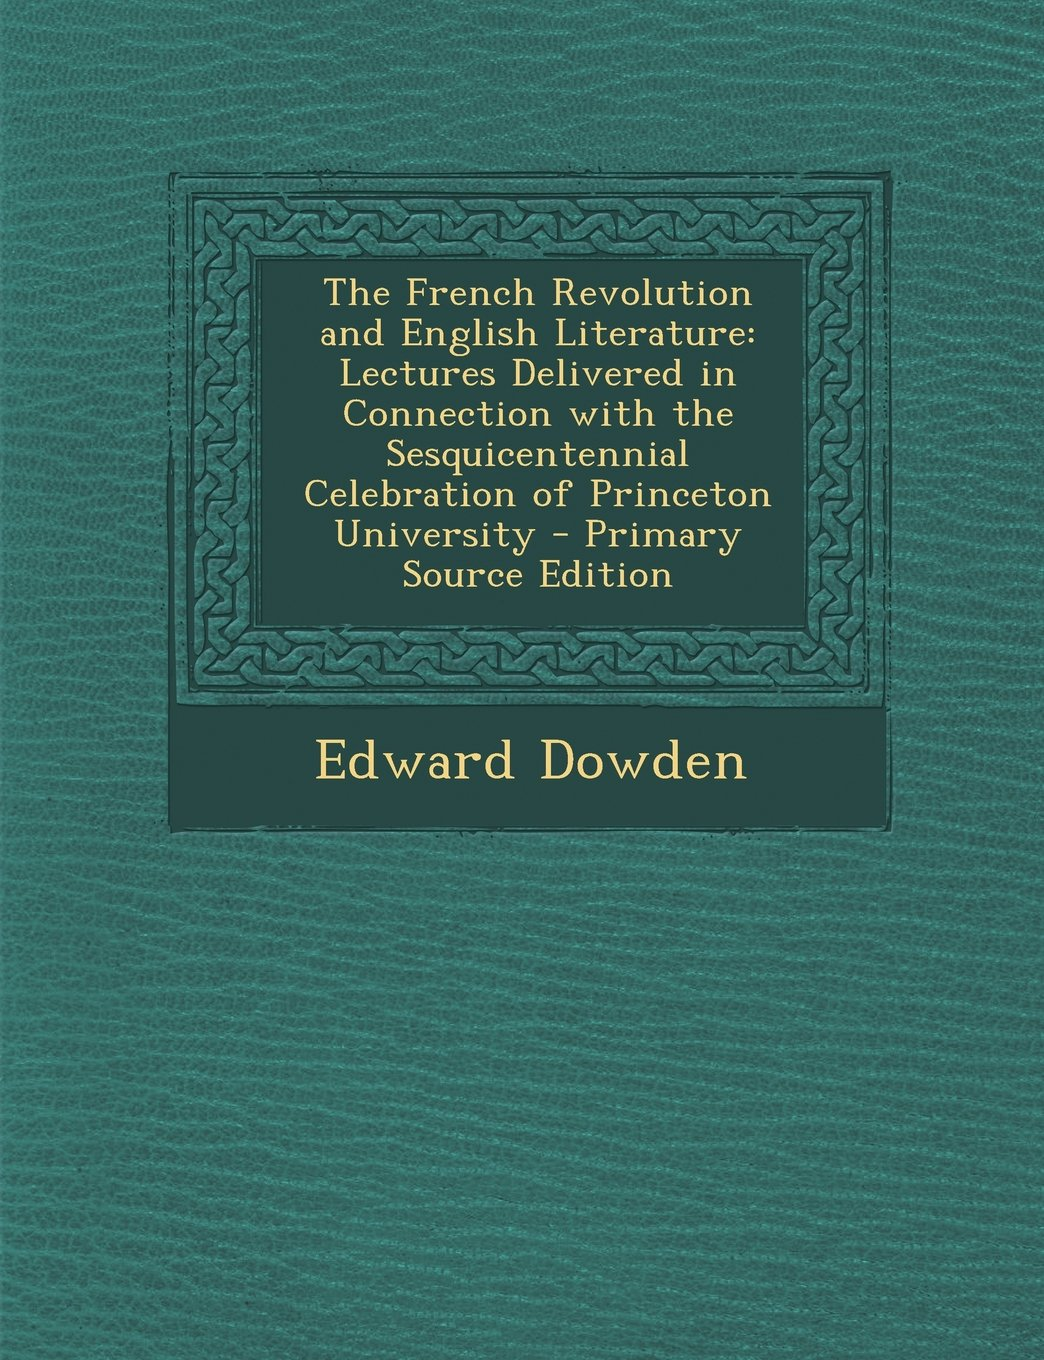 Download The French Revolution and English Literature: Lectures Delivered in Connection with the Sesquicentennial Celebration of Princeton University - Primary PDF